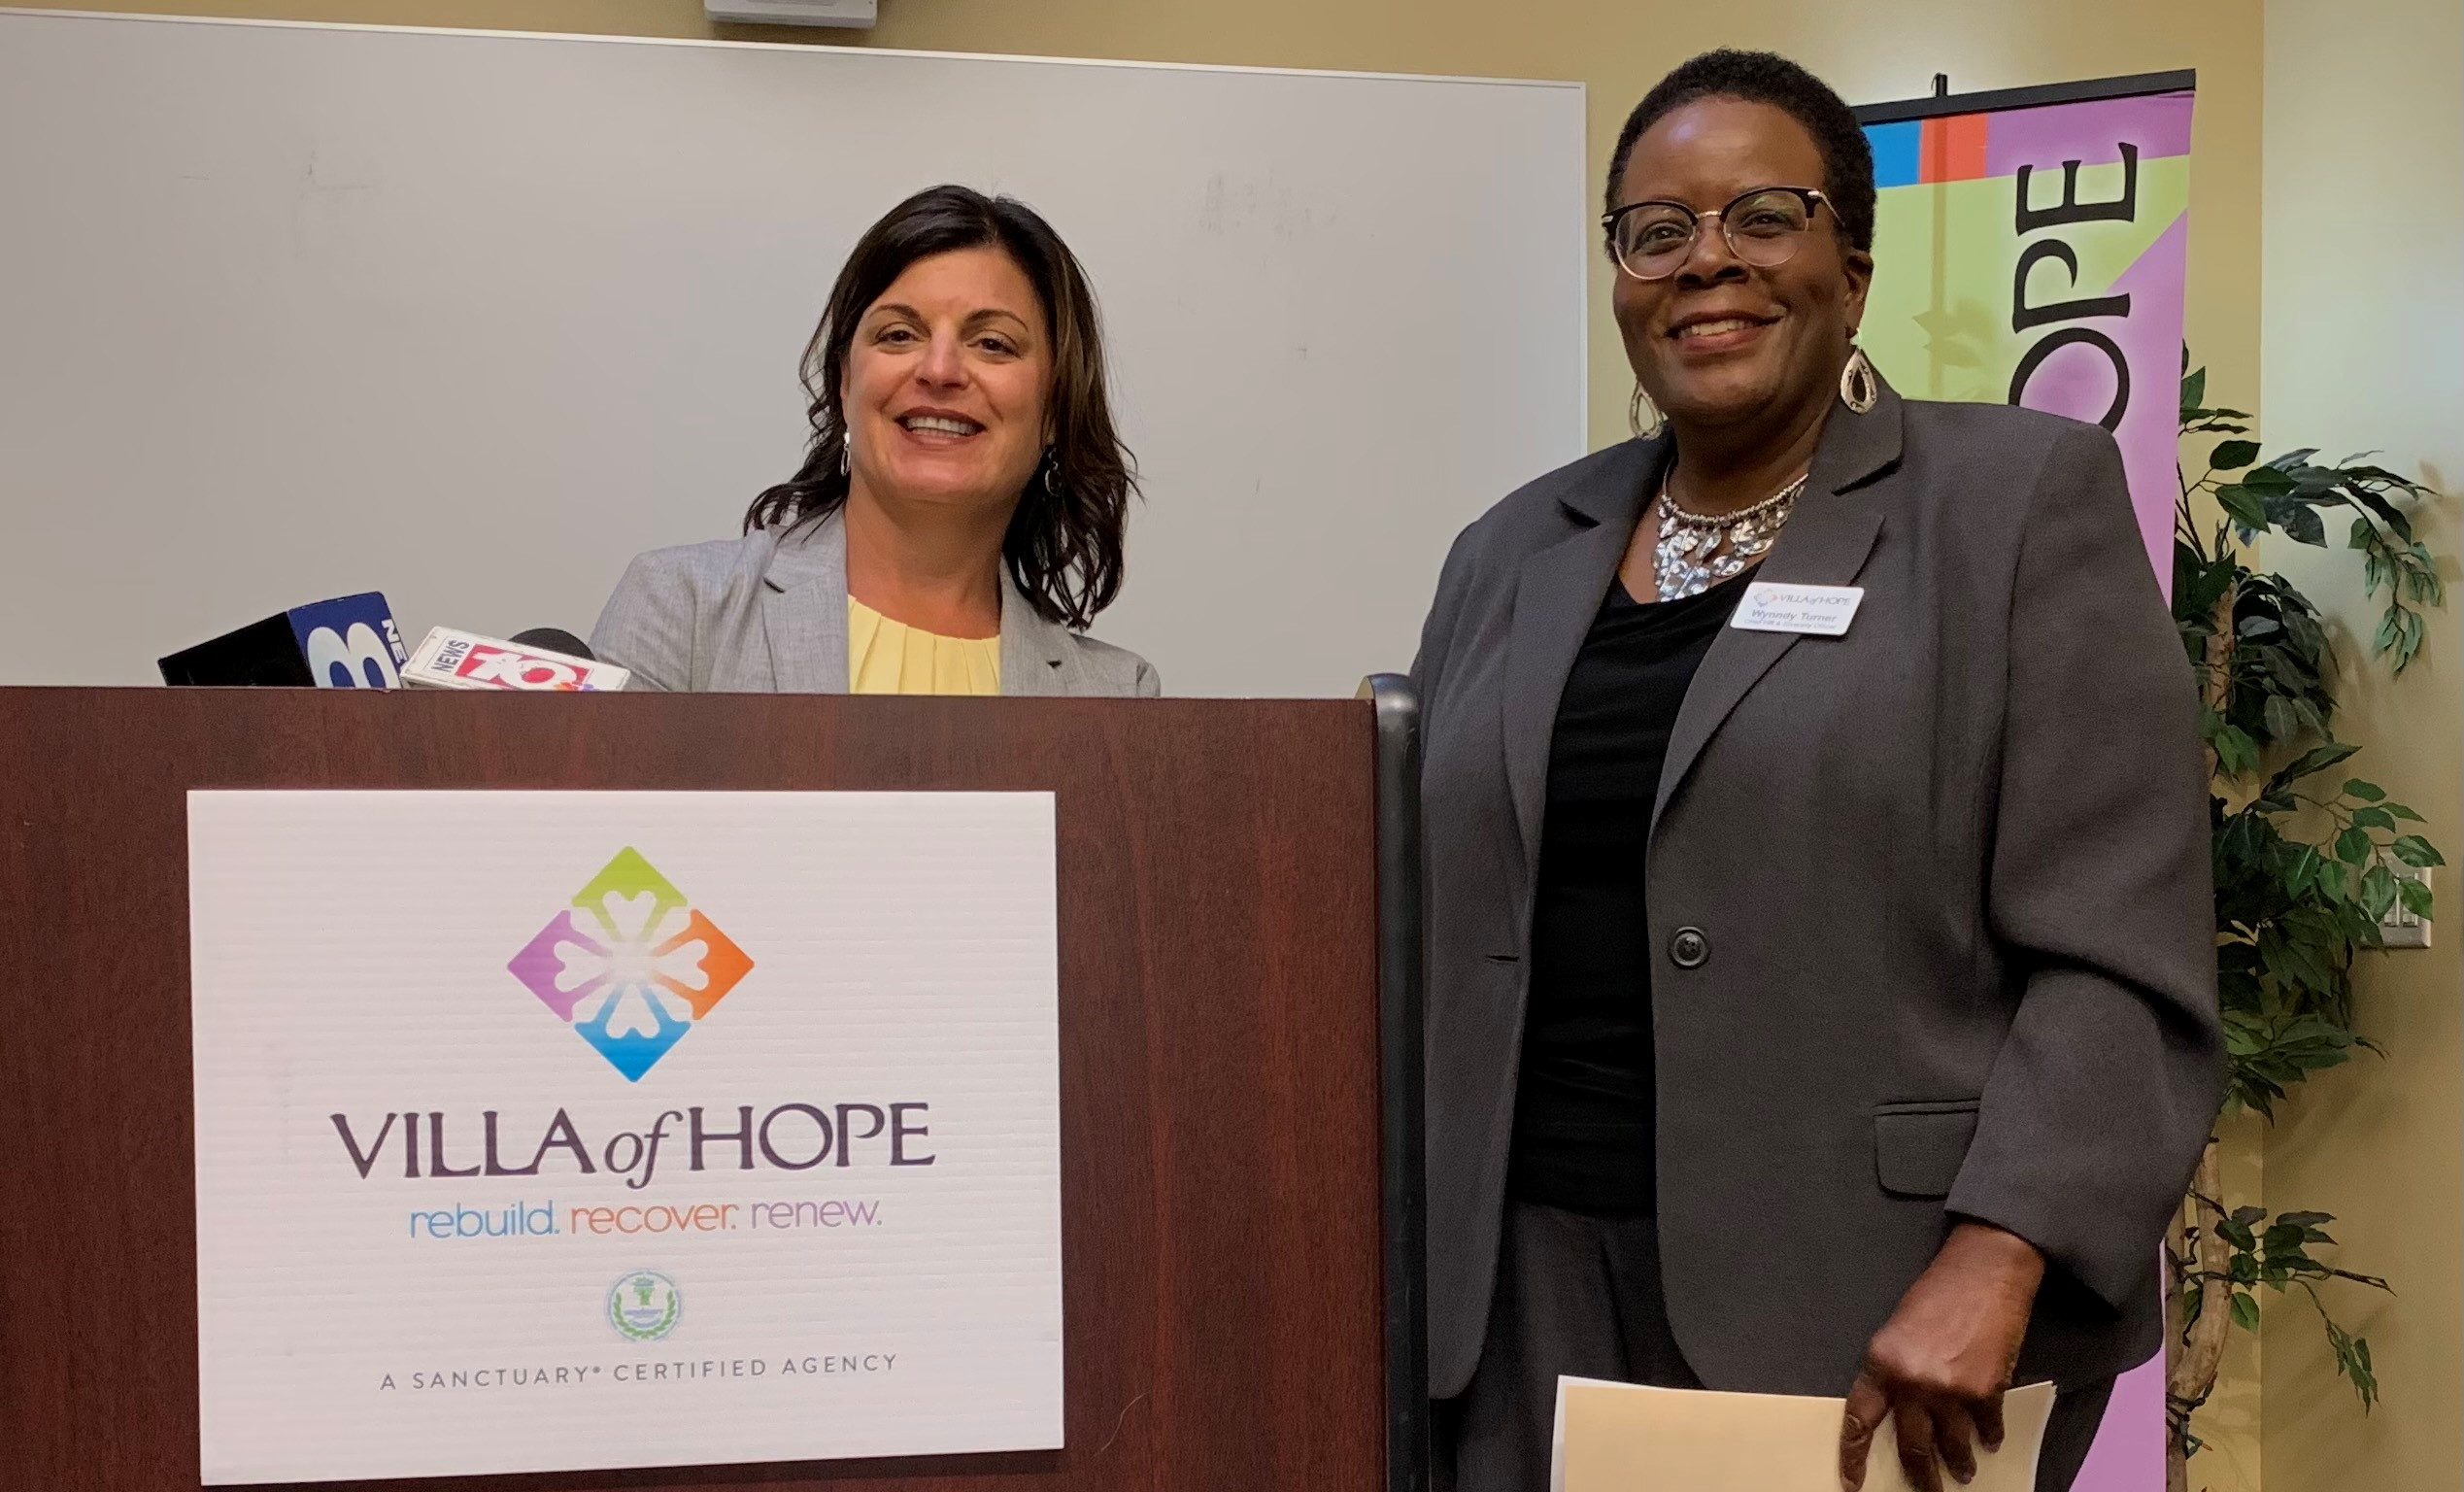 Christina Gullo and Wynndy Turner from Villa of Hope, speaking at a press conference with TV microphones on the podium